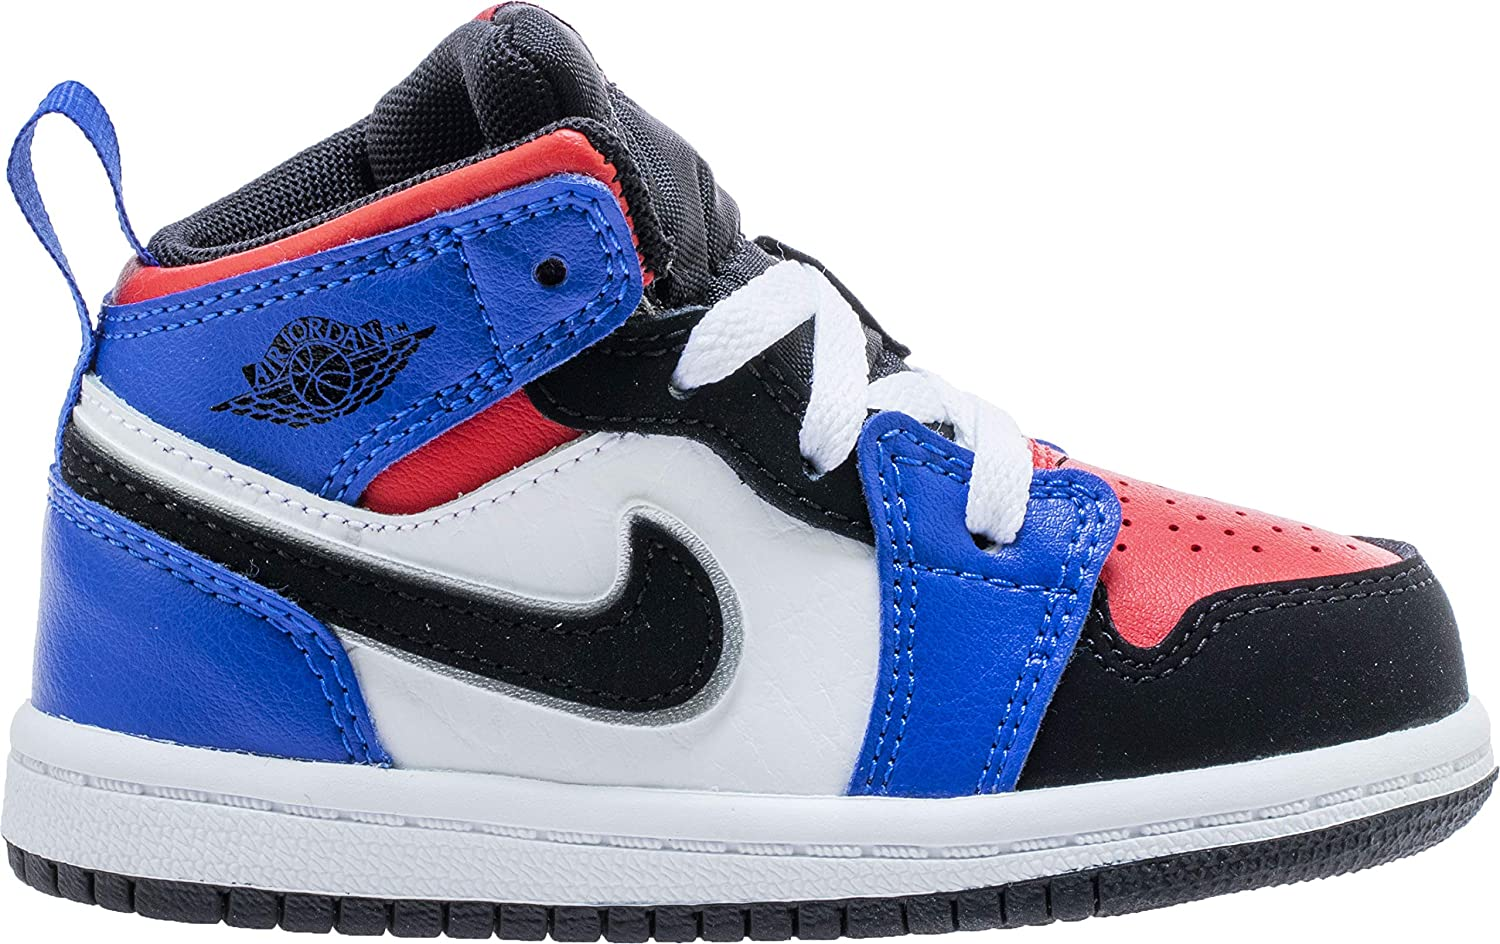 new style a2d28 dec5e Nike Boy's Air Jordan Retro 1 Shoe, White/Black/Hyper Royal/University Red,  5 M US Toddler